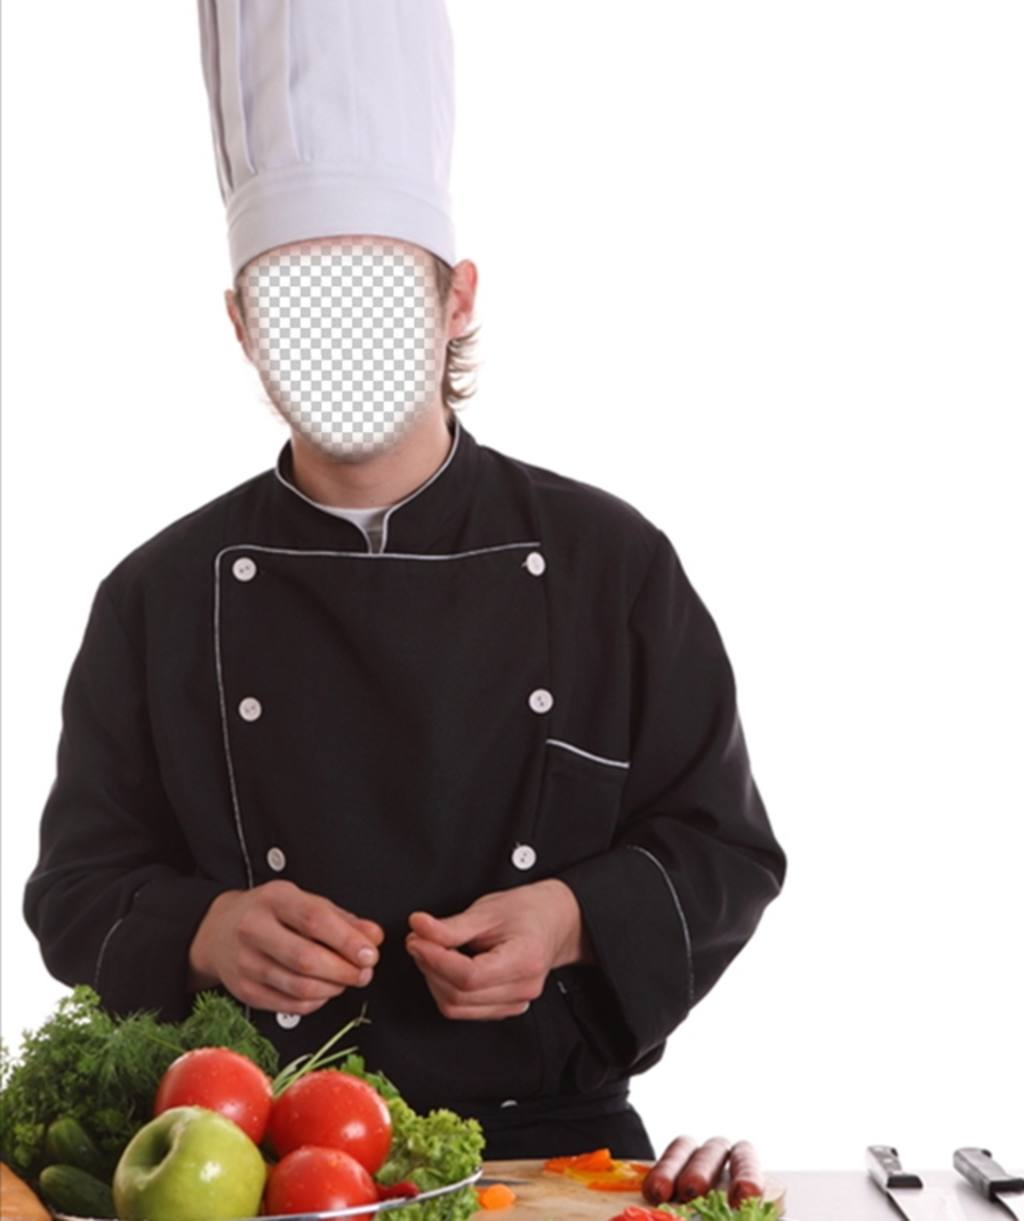 Photomontage Of A Chef With Hat And Uniform Cooking To